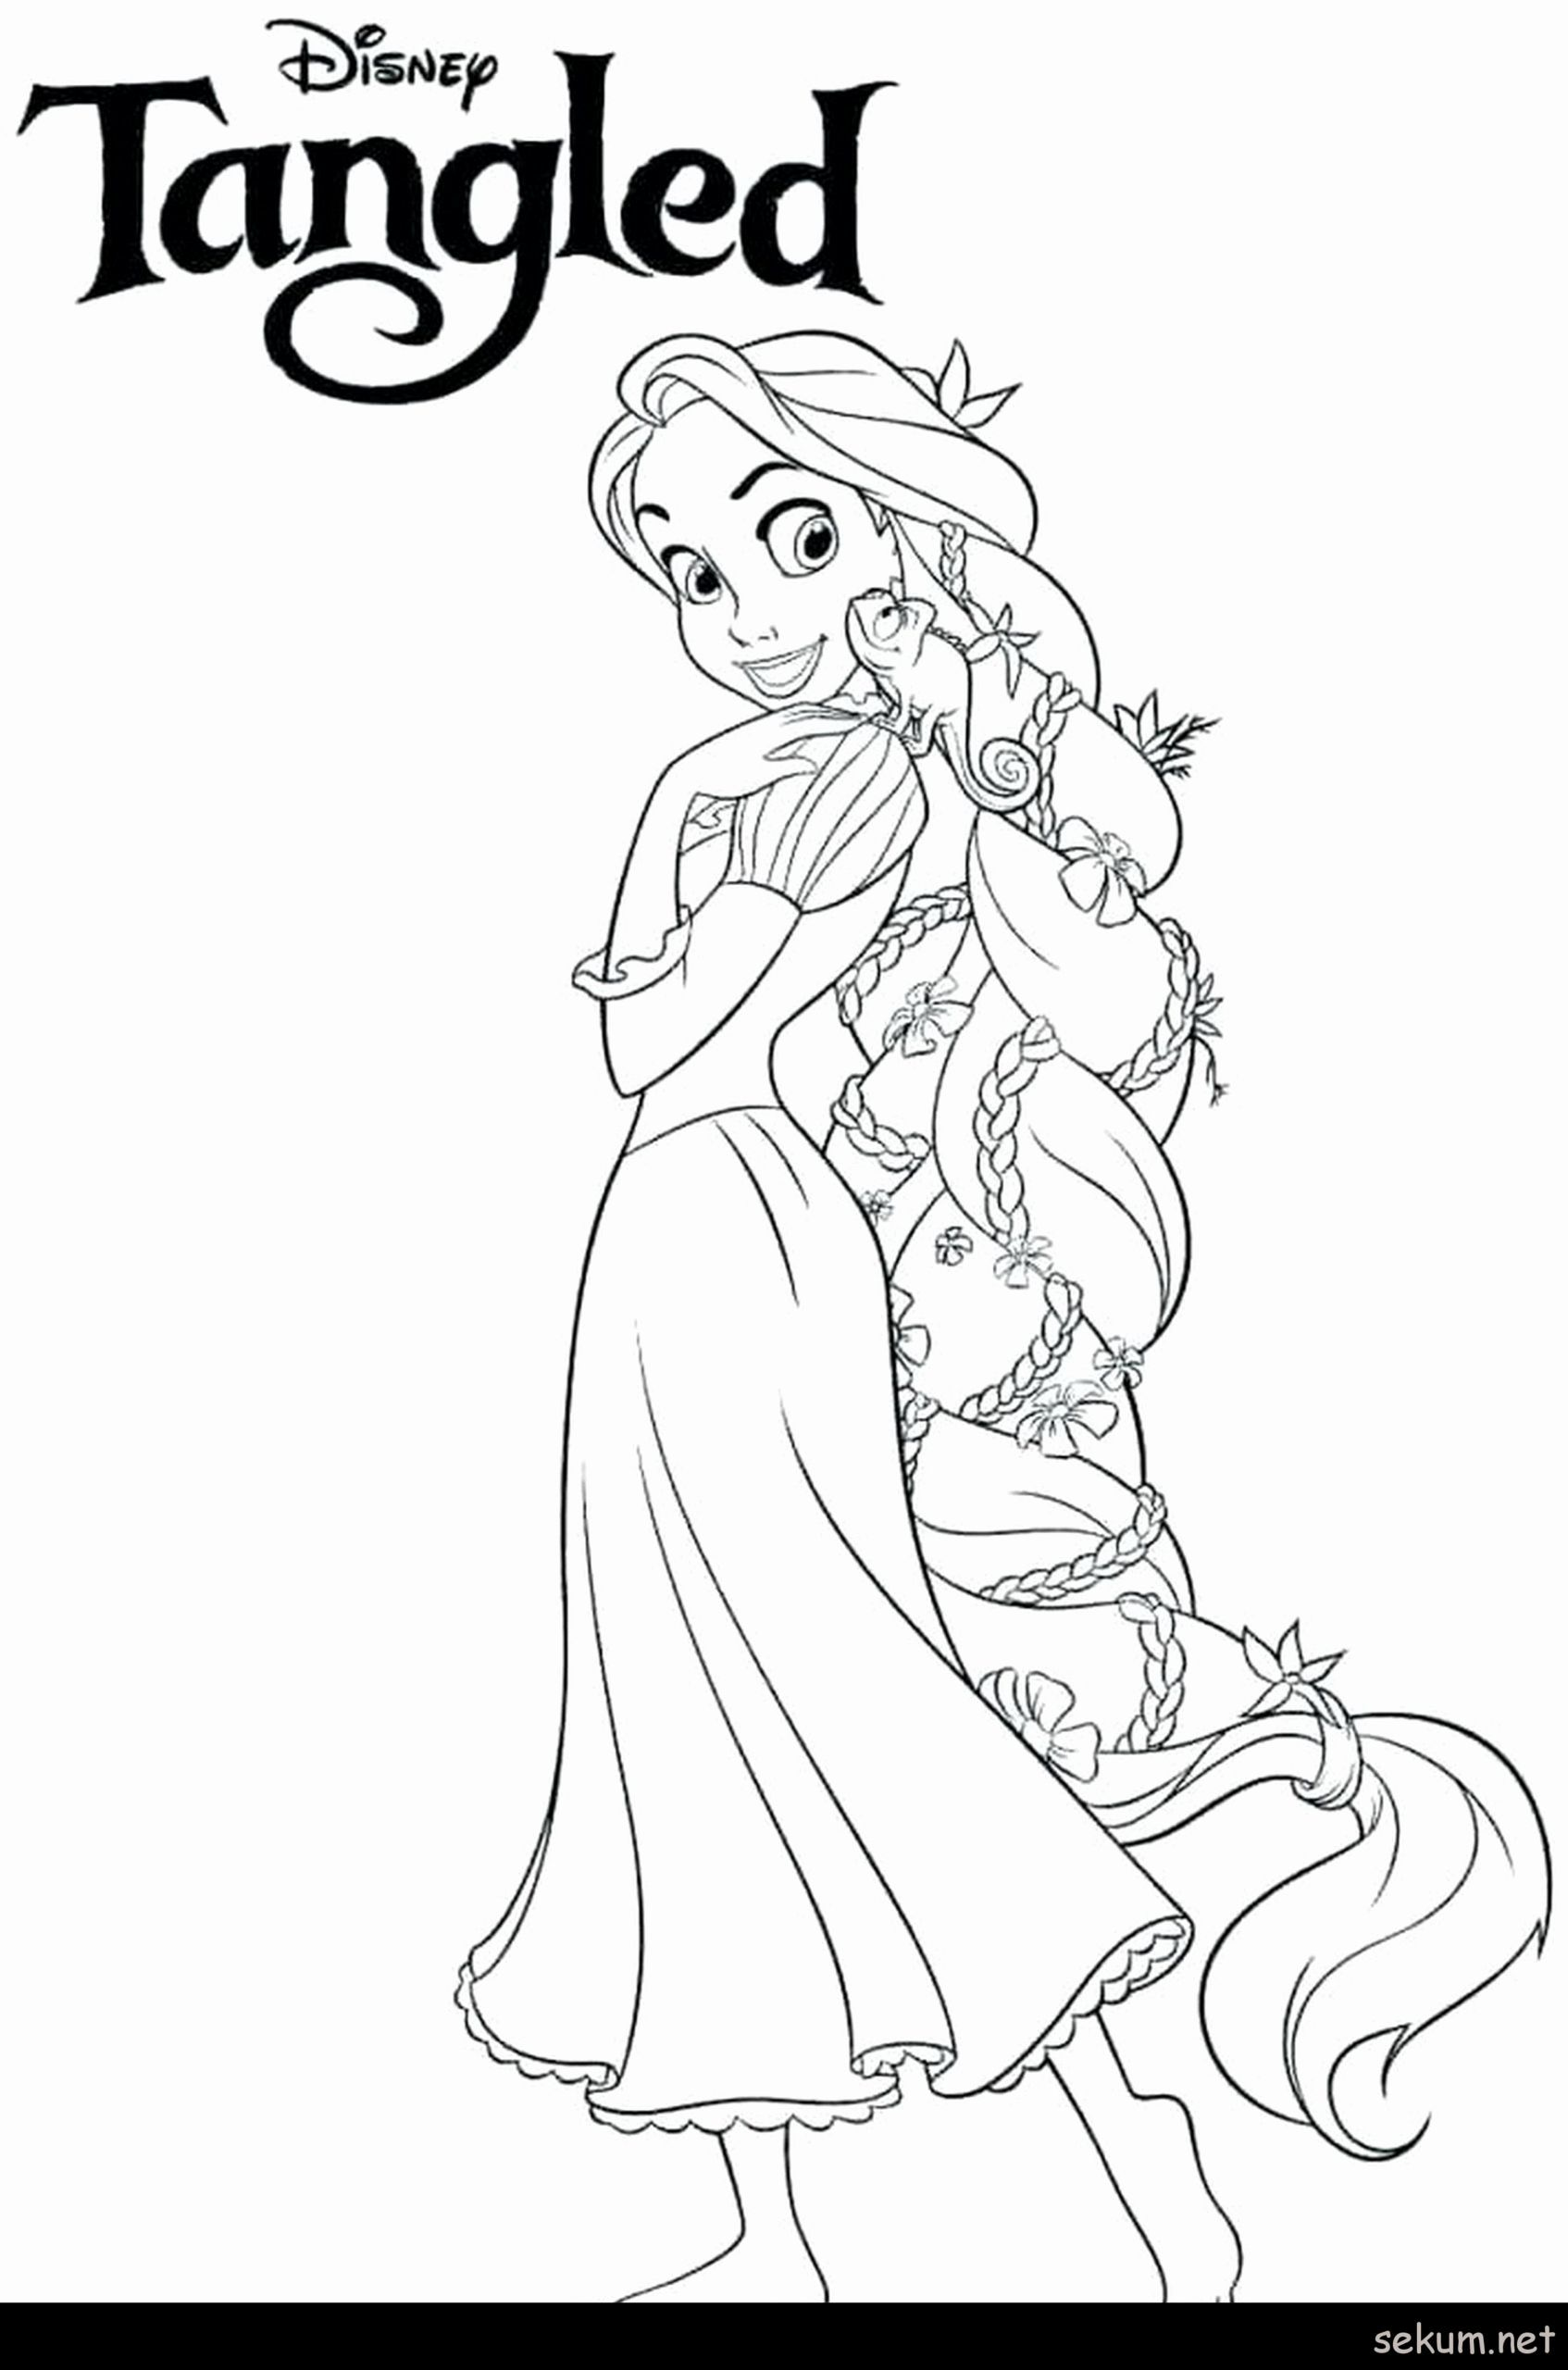 Complex Printable Coloring Pages For Kids Disney Princesses Coloring Pages For K In 2020 Tangled Coloring Pages Disney Coloring Sheets Disney Princess Coloring Pages